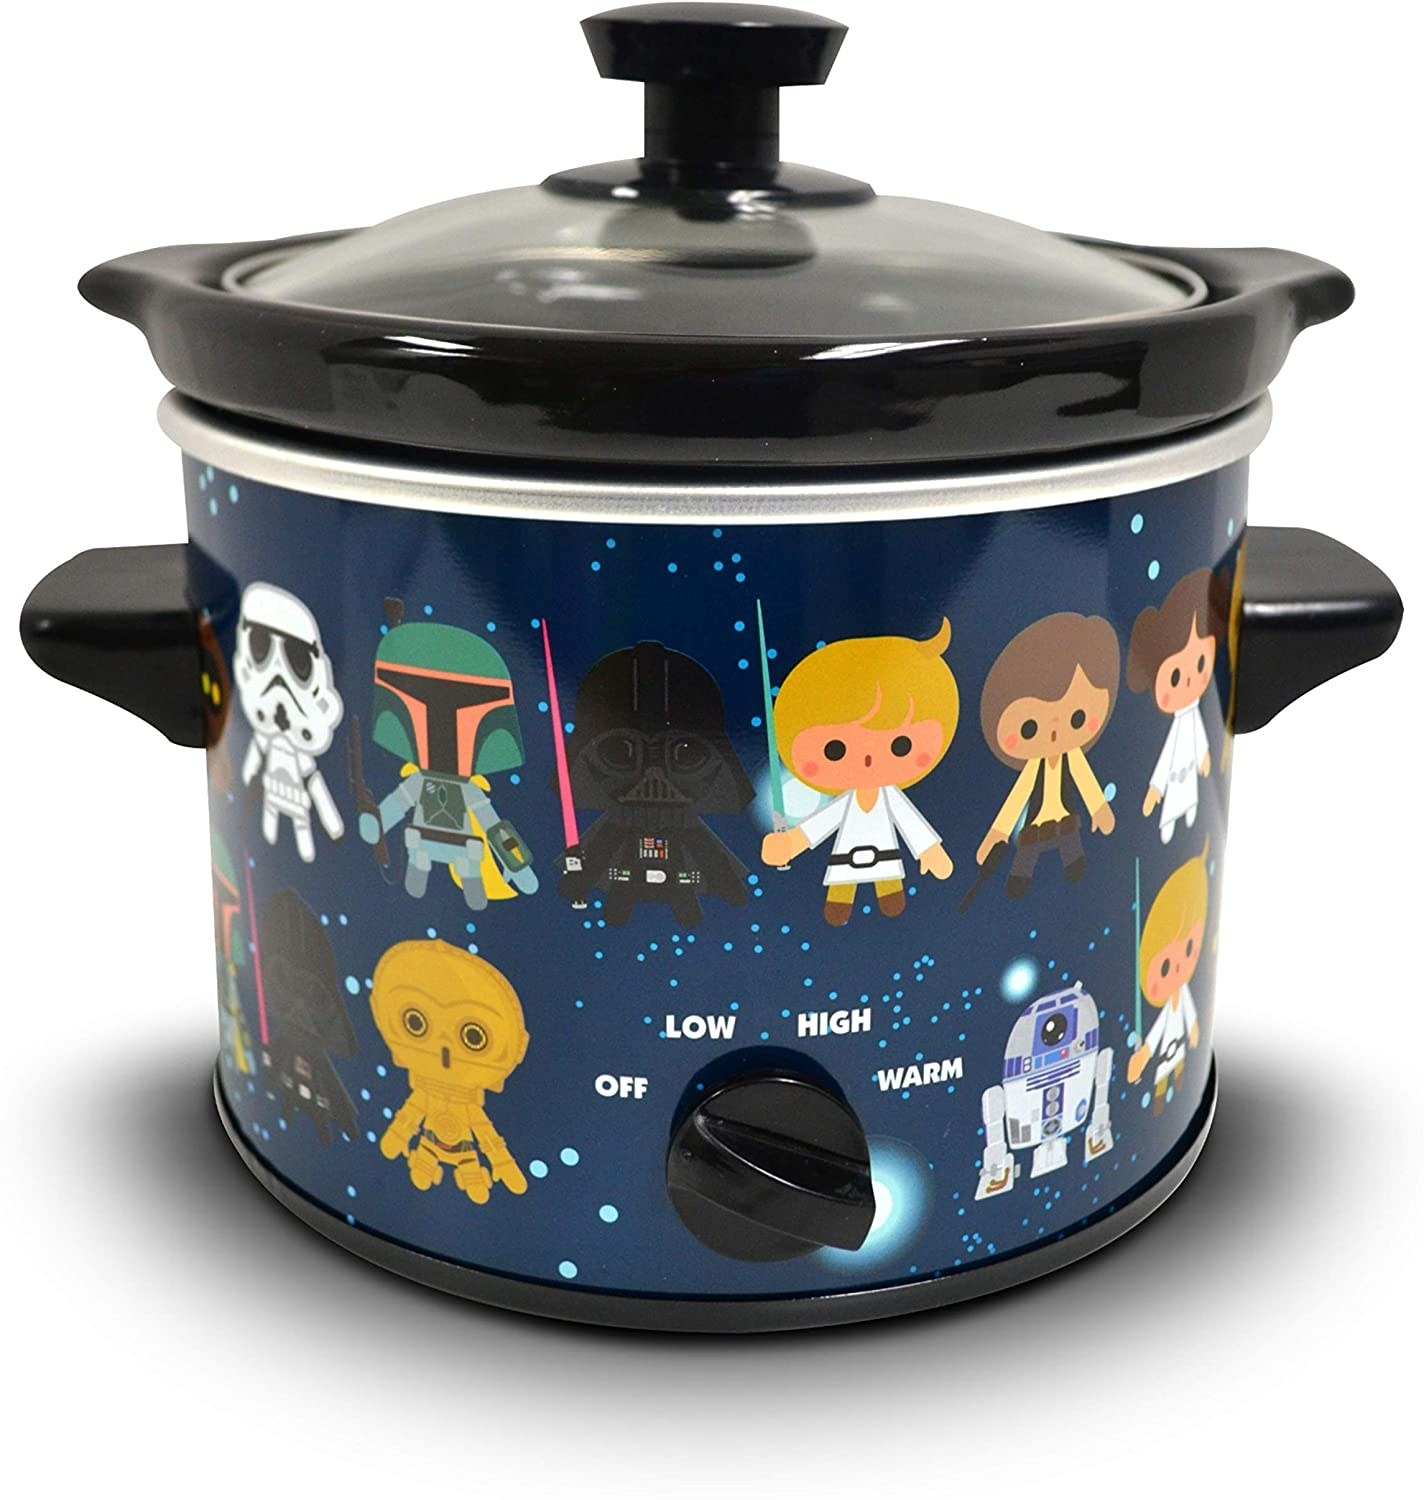 the slow cooker with animated Star Wars characters all over it including R2D2, Princess Leia, Darth Vadar, and more